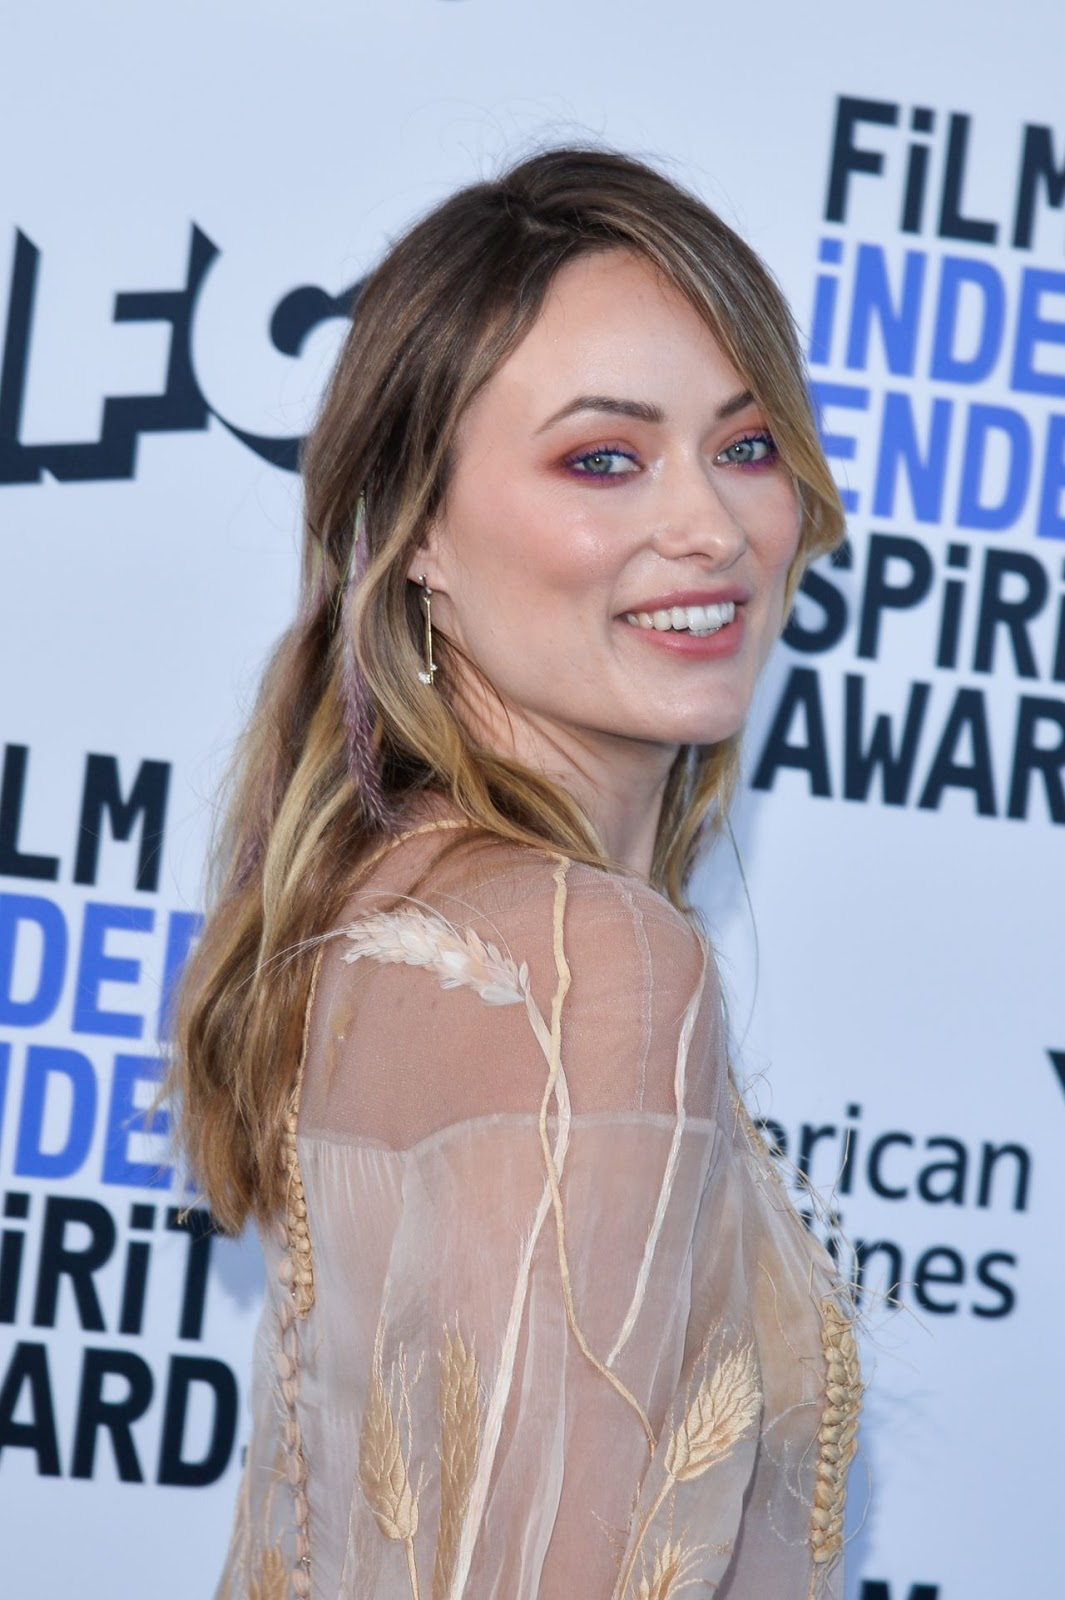 Olivia Wilde - Film Independent Spirit Awards in Santa Monica